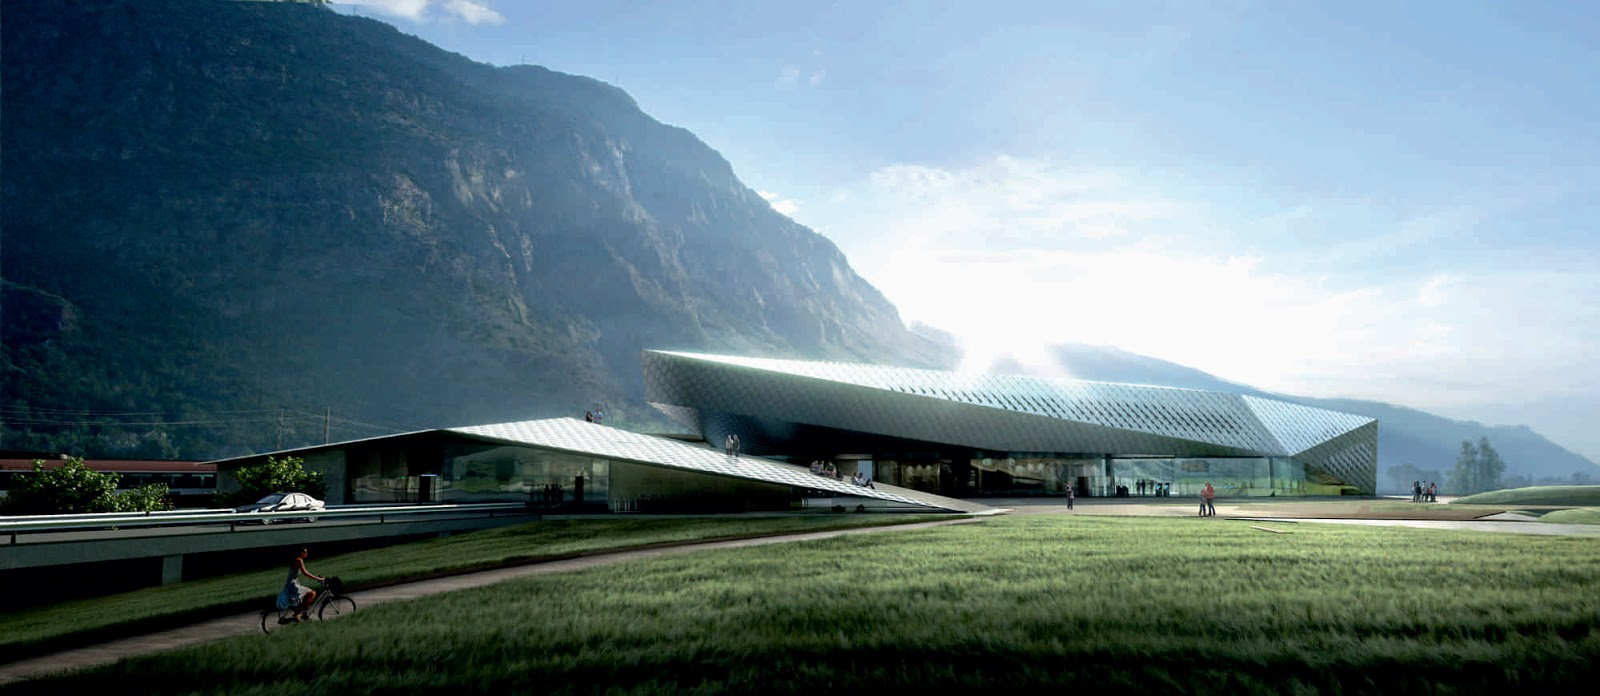 Systematica-Susa Station-3-Render View 01